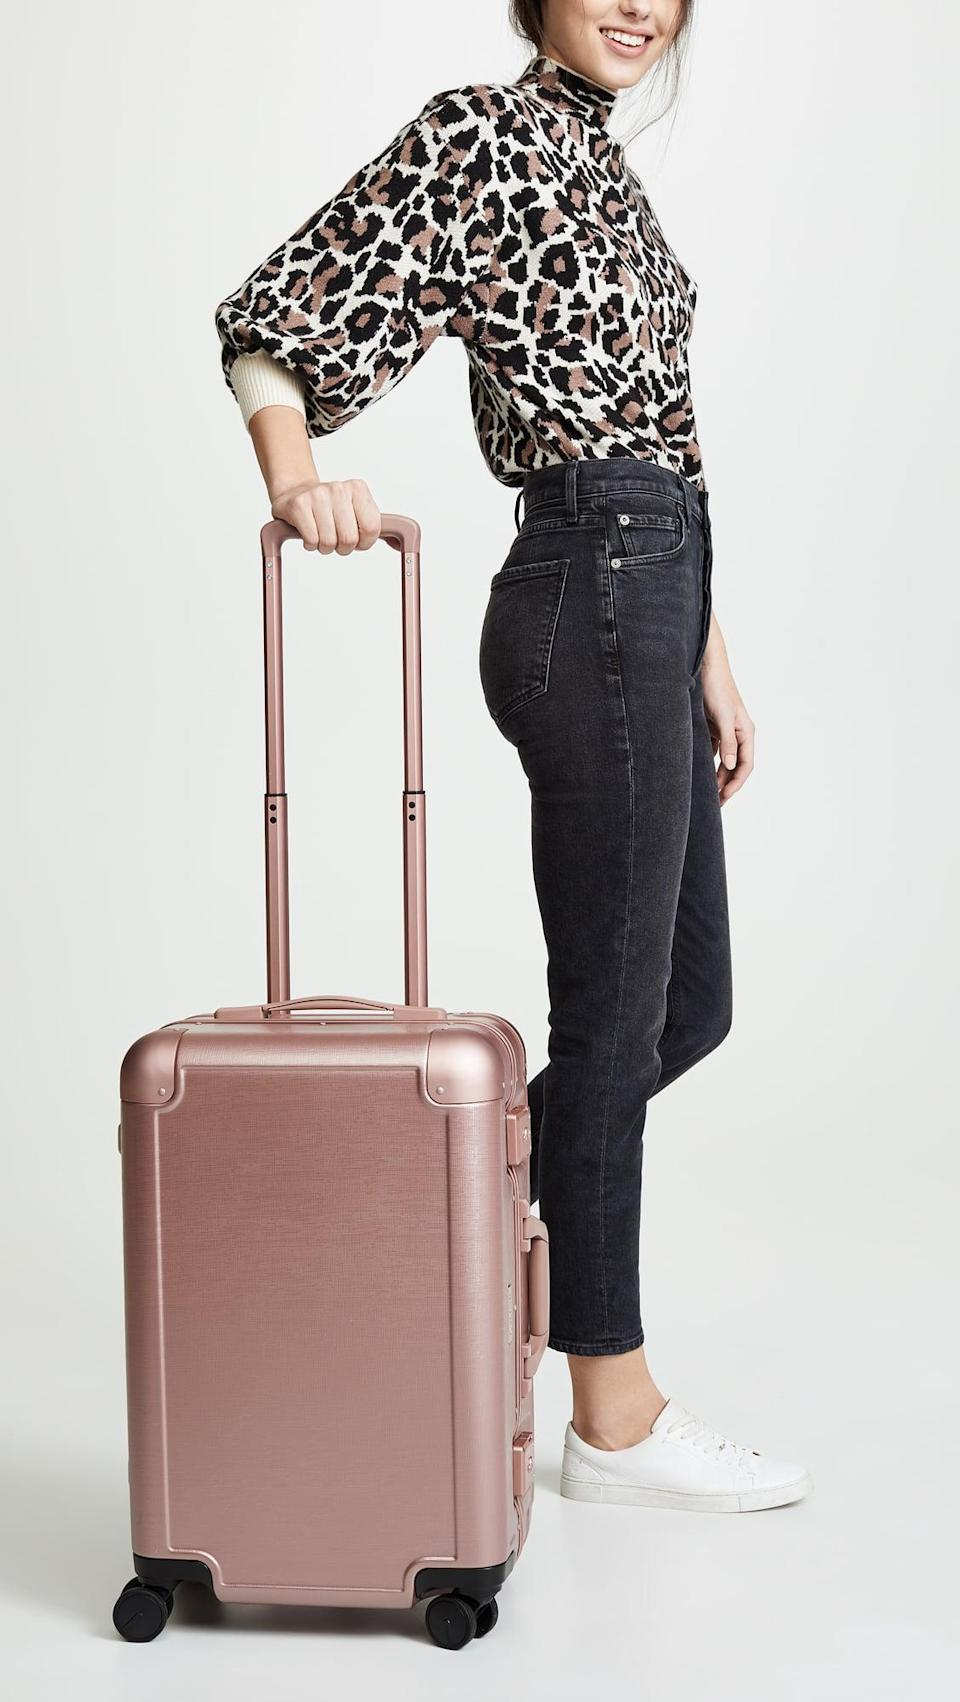 <p>This metallic pink <span>Calpak x Jen Atkin Carry On Suitcase</span> ($228, originally $285) is at the top of our travel wish lists. It's cute, chic, and even comes with a fun sticker set.</p>